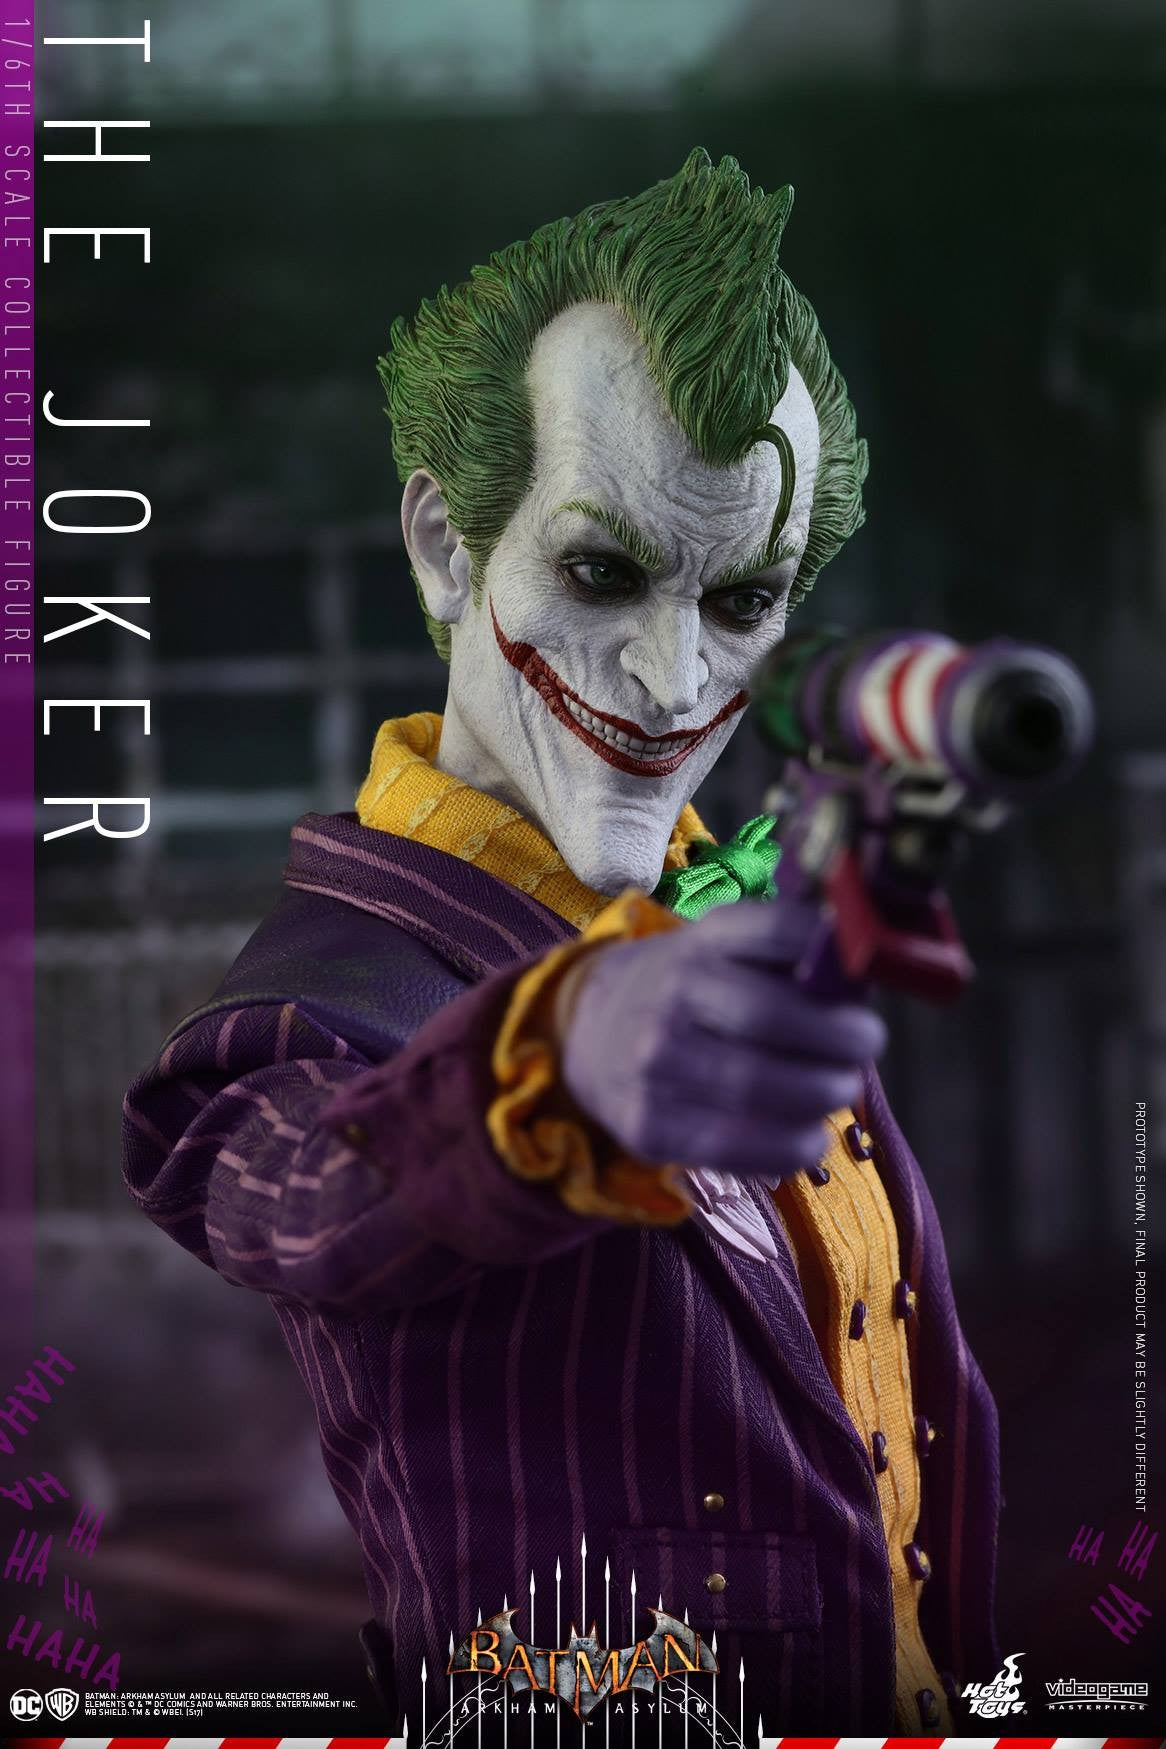 Hot Toys - VGM27 - Batman: Arkham Asylum - The Joker - Marvelous Toys - 20